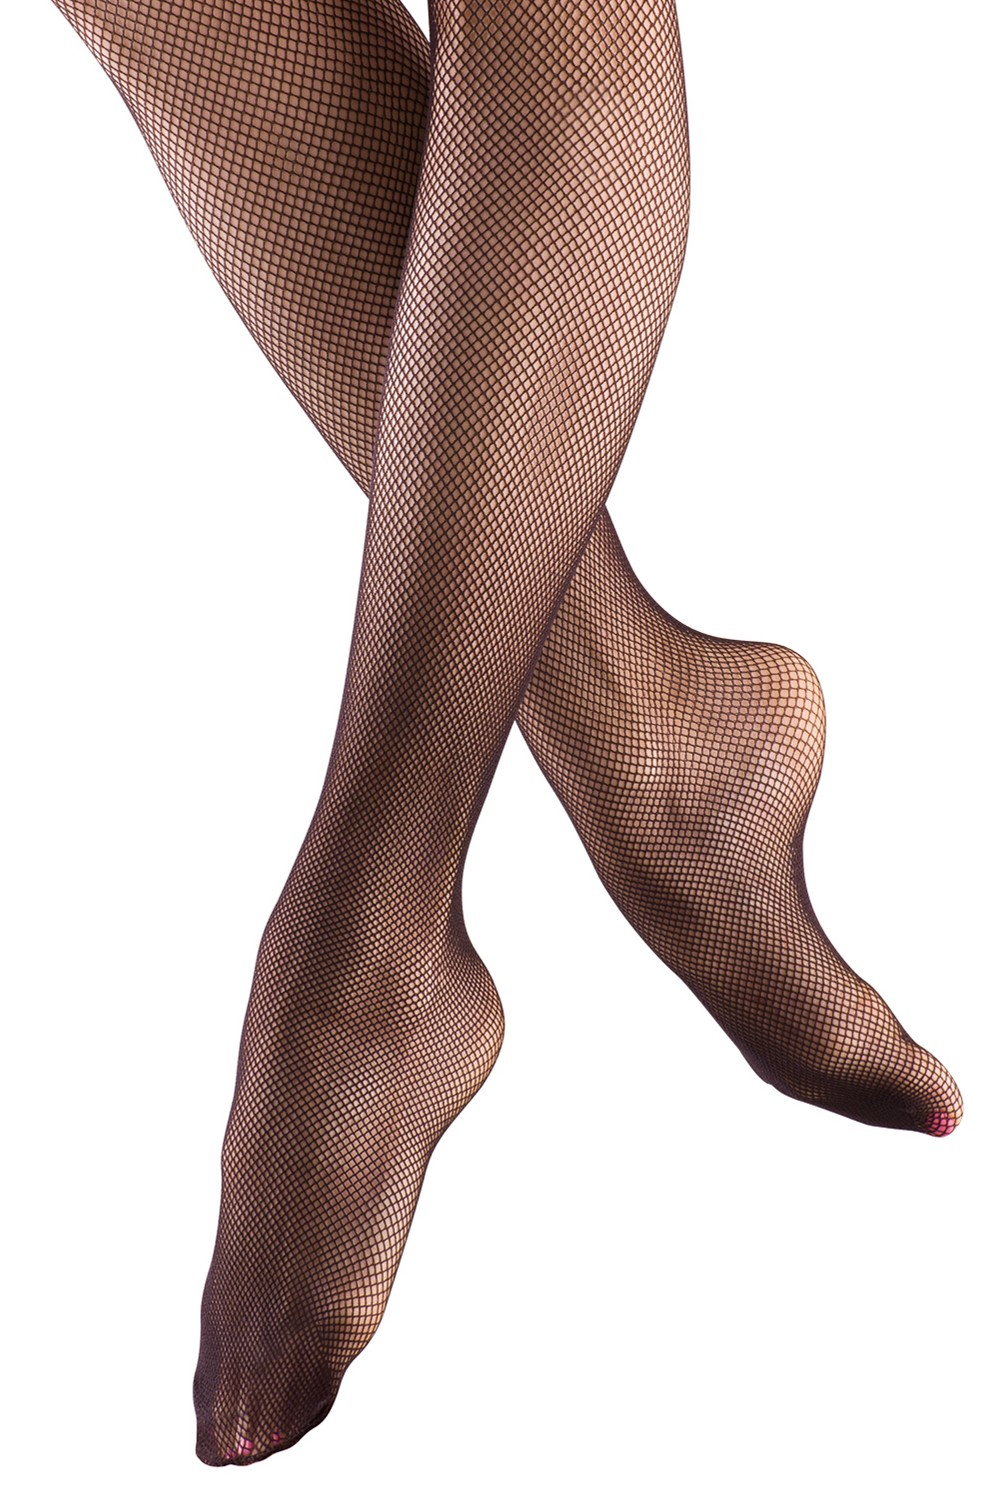 Girls Fishnet Tight Children's Dance Tights